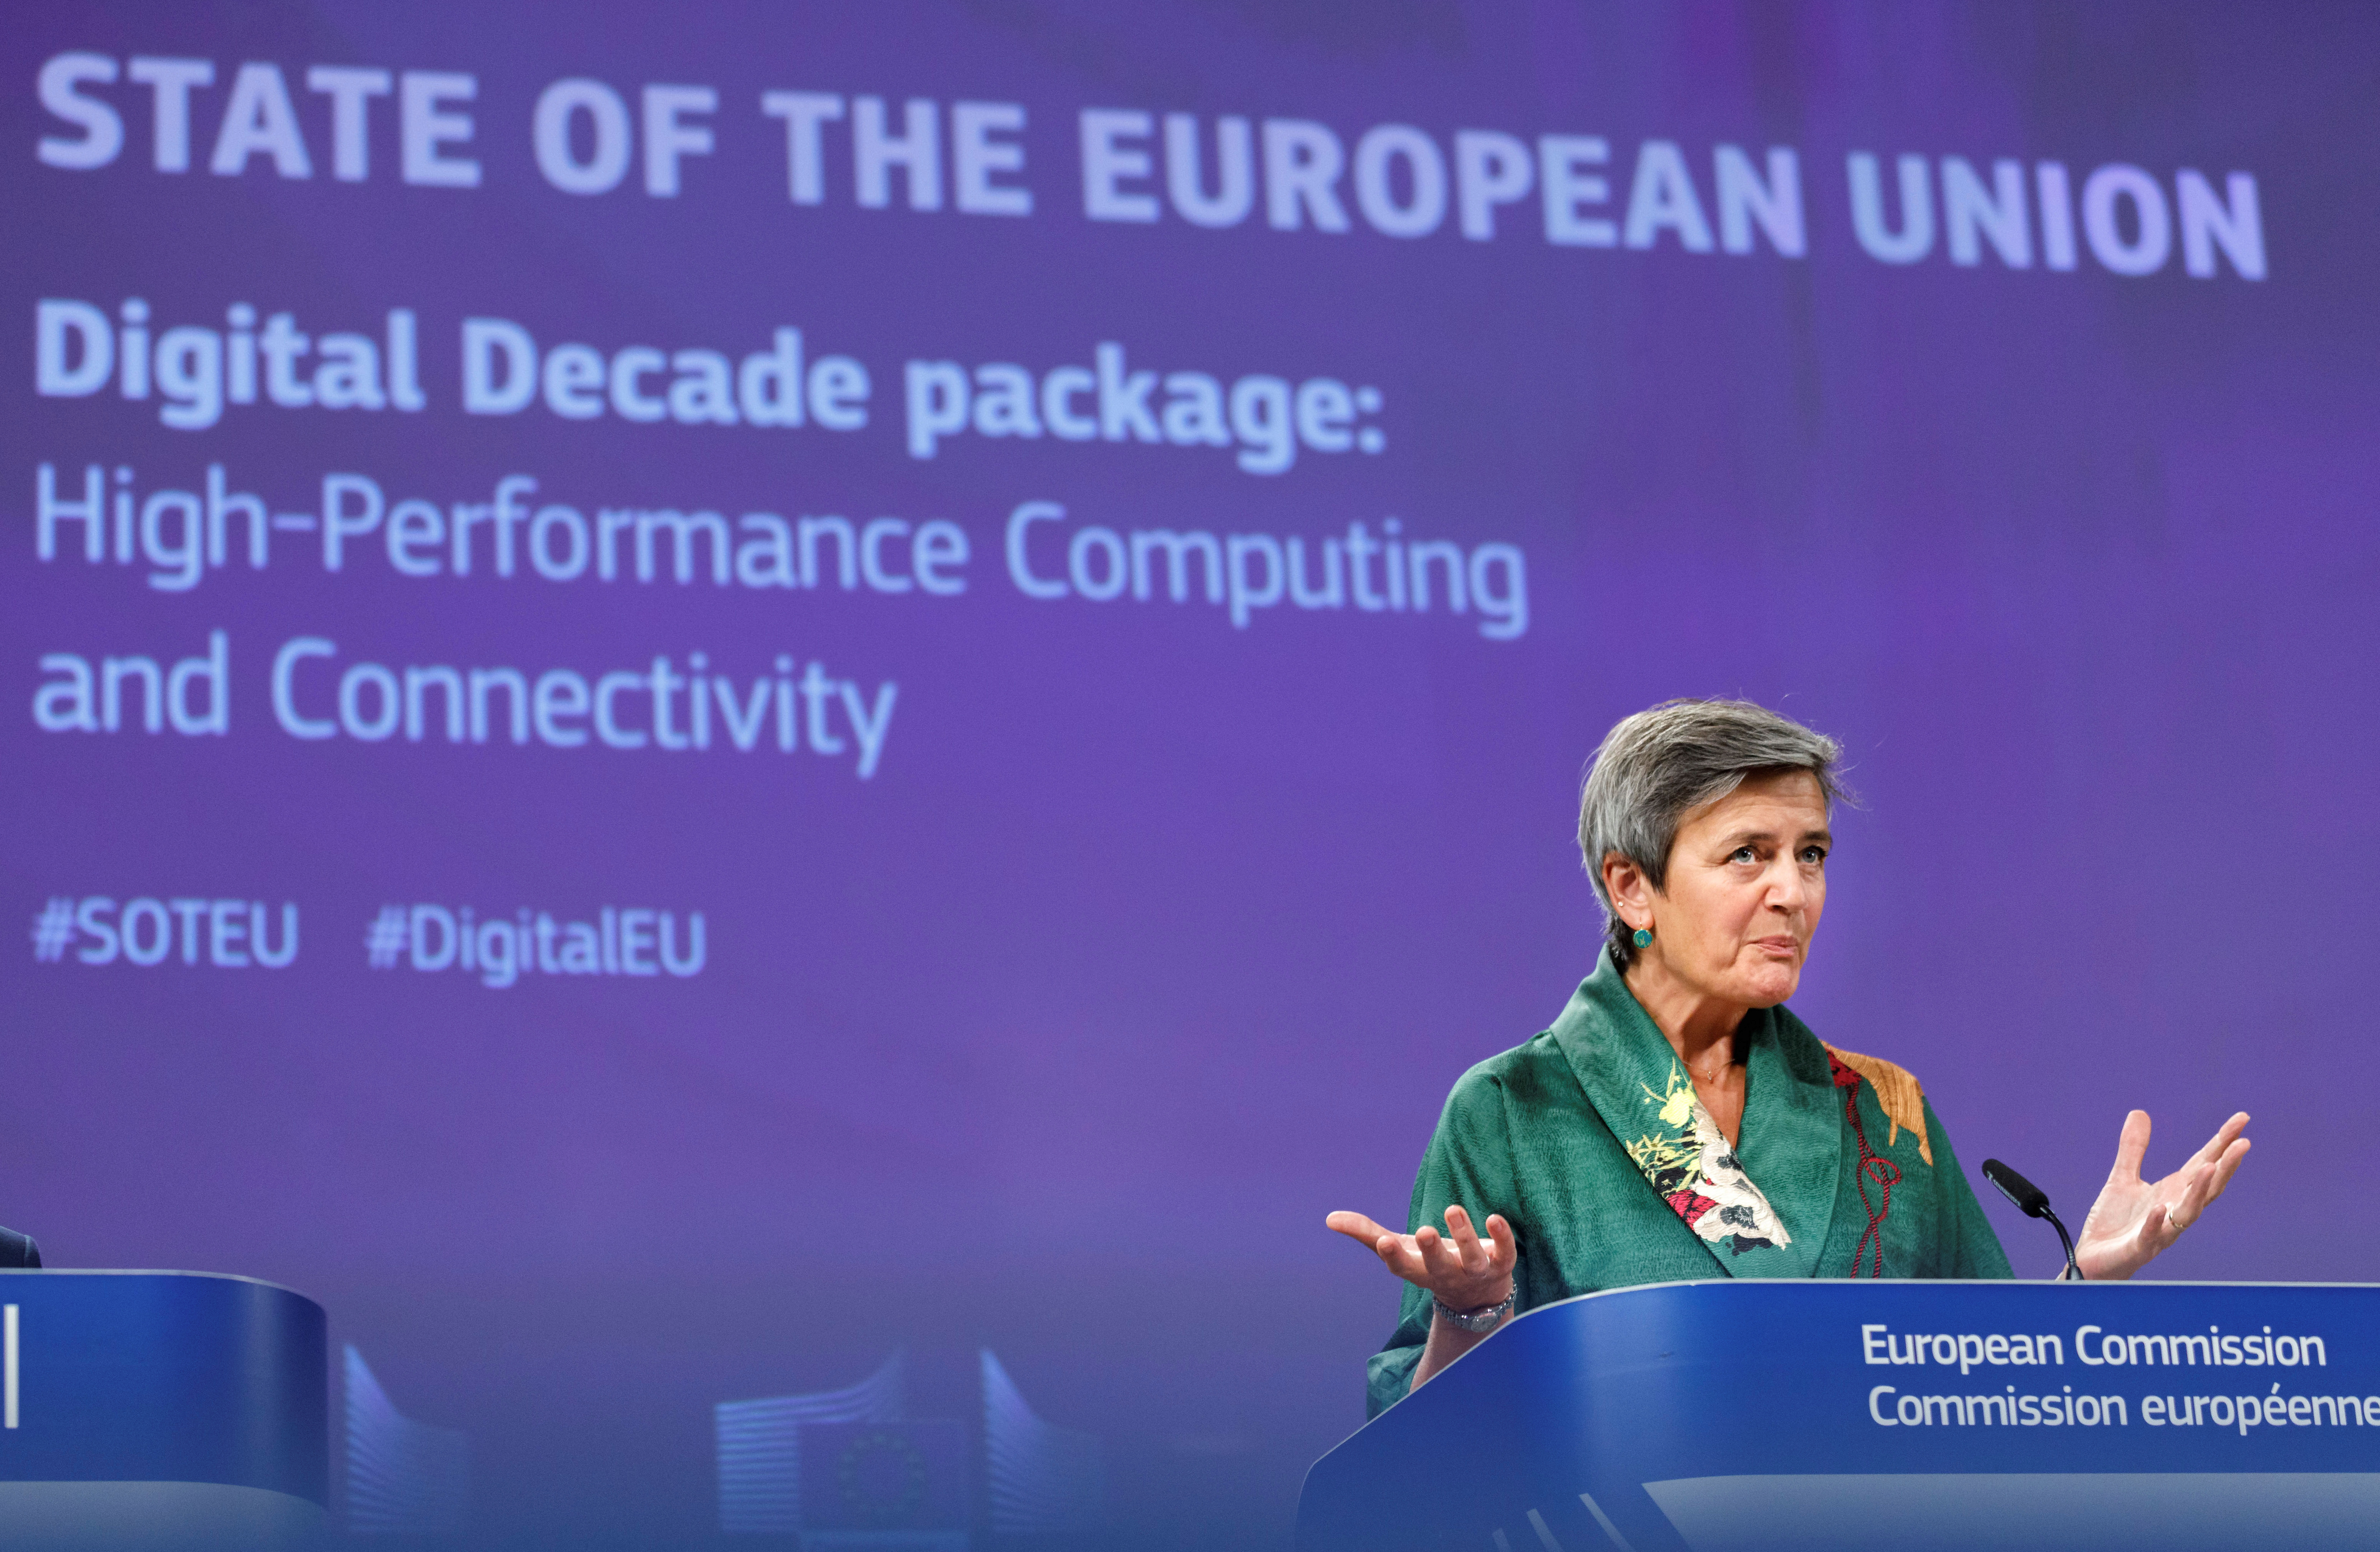 European Commission vice-president Margrethe Vestager speaks during a news conference on regulation on high performance computing and connectivity, at EU headquarters in Brussels, Belgium September 18, 2020. Olivier Matthys/Pool via REUTERS